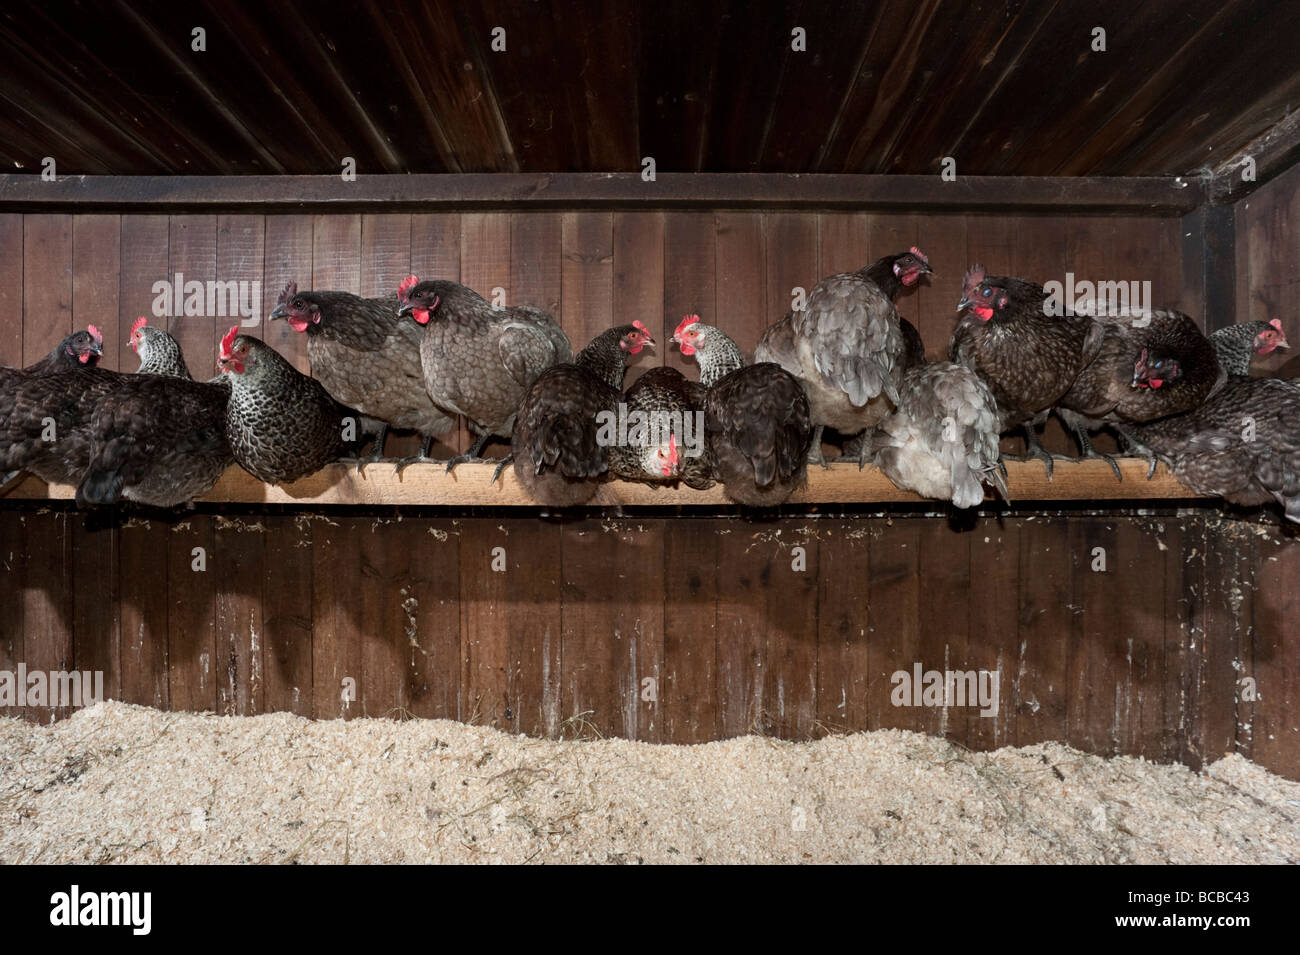 Bluebell and speckledy hens at roost in chicken shed - Stock Image